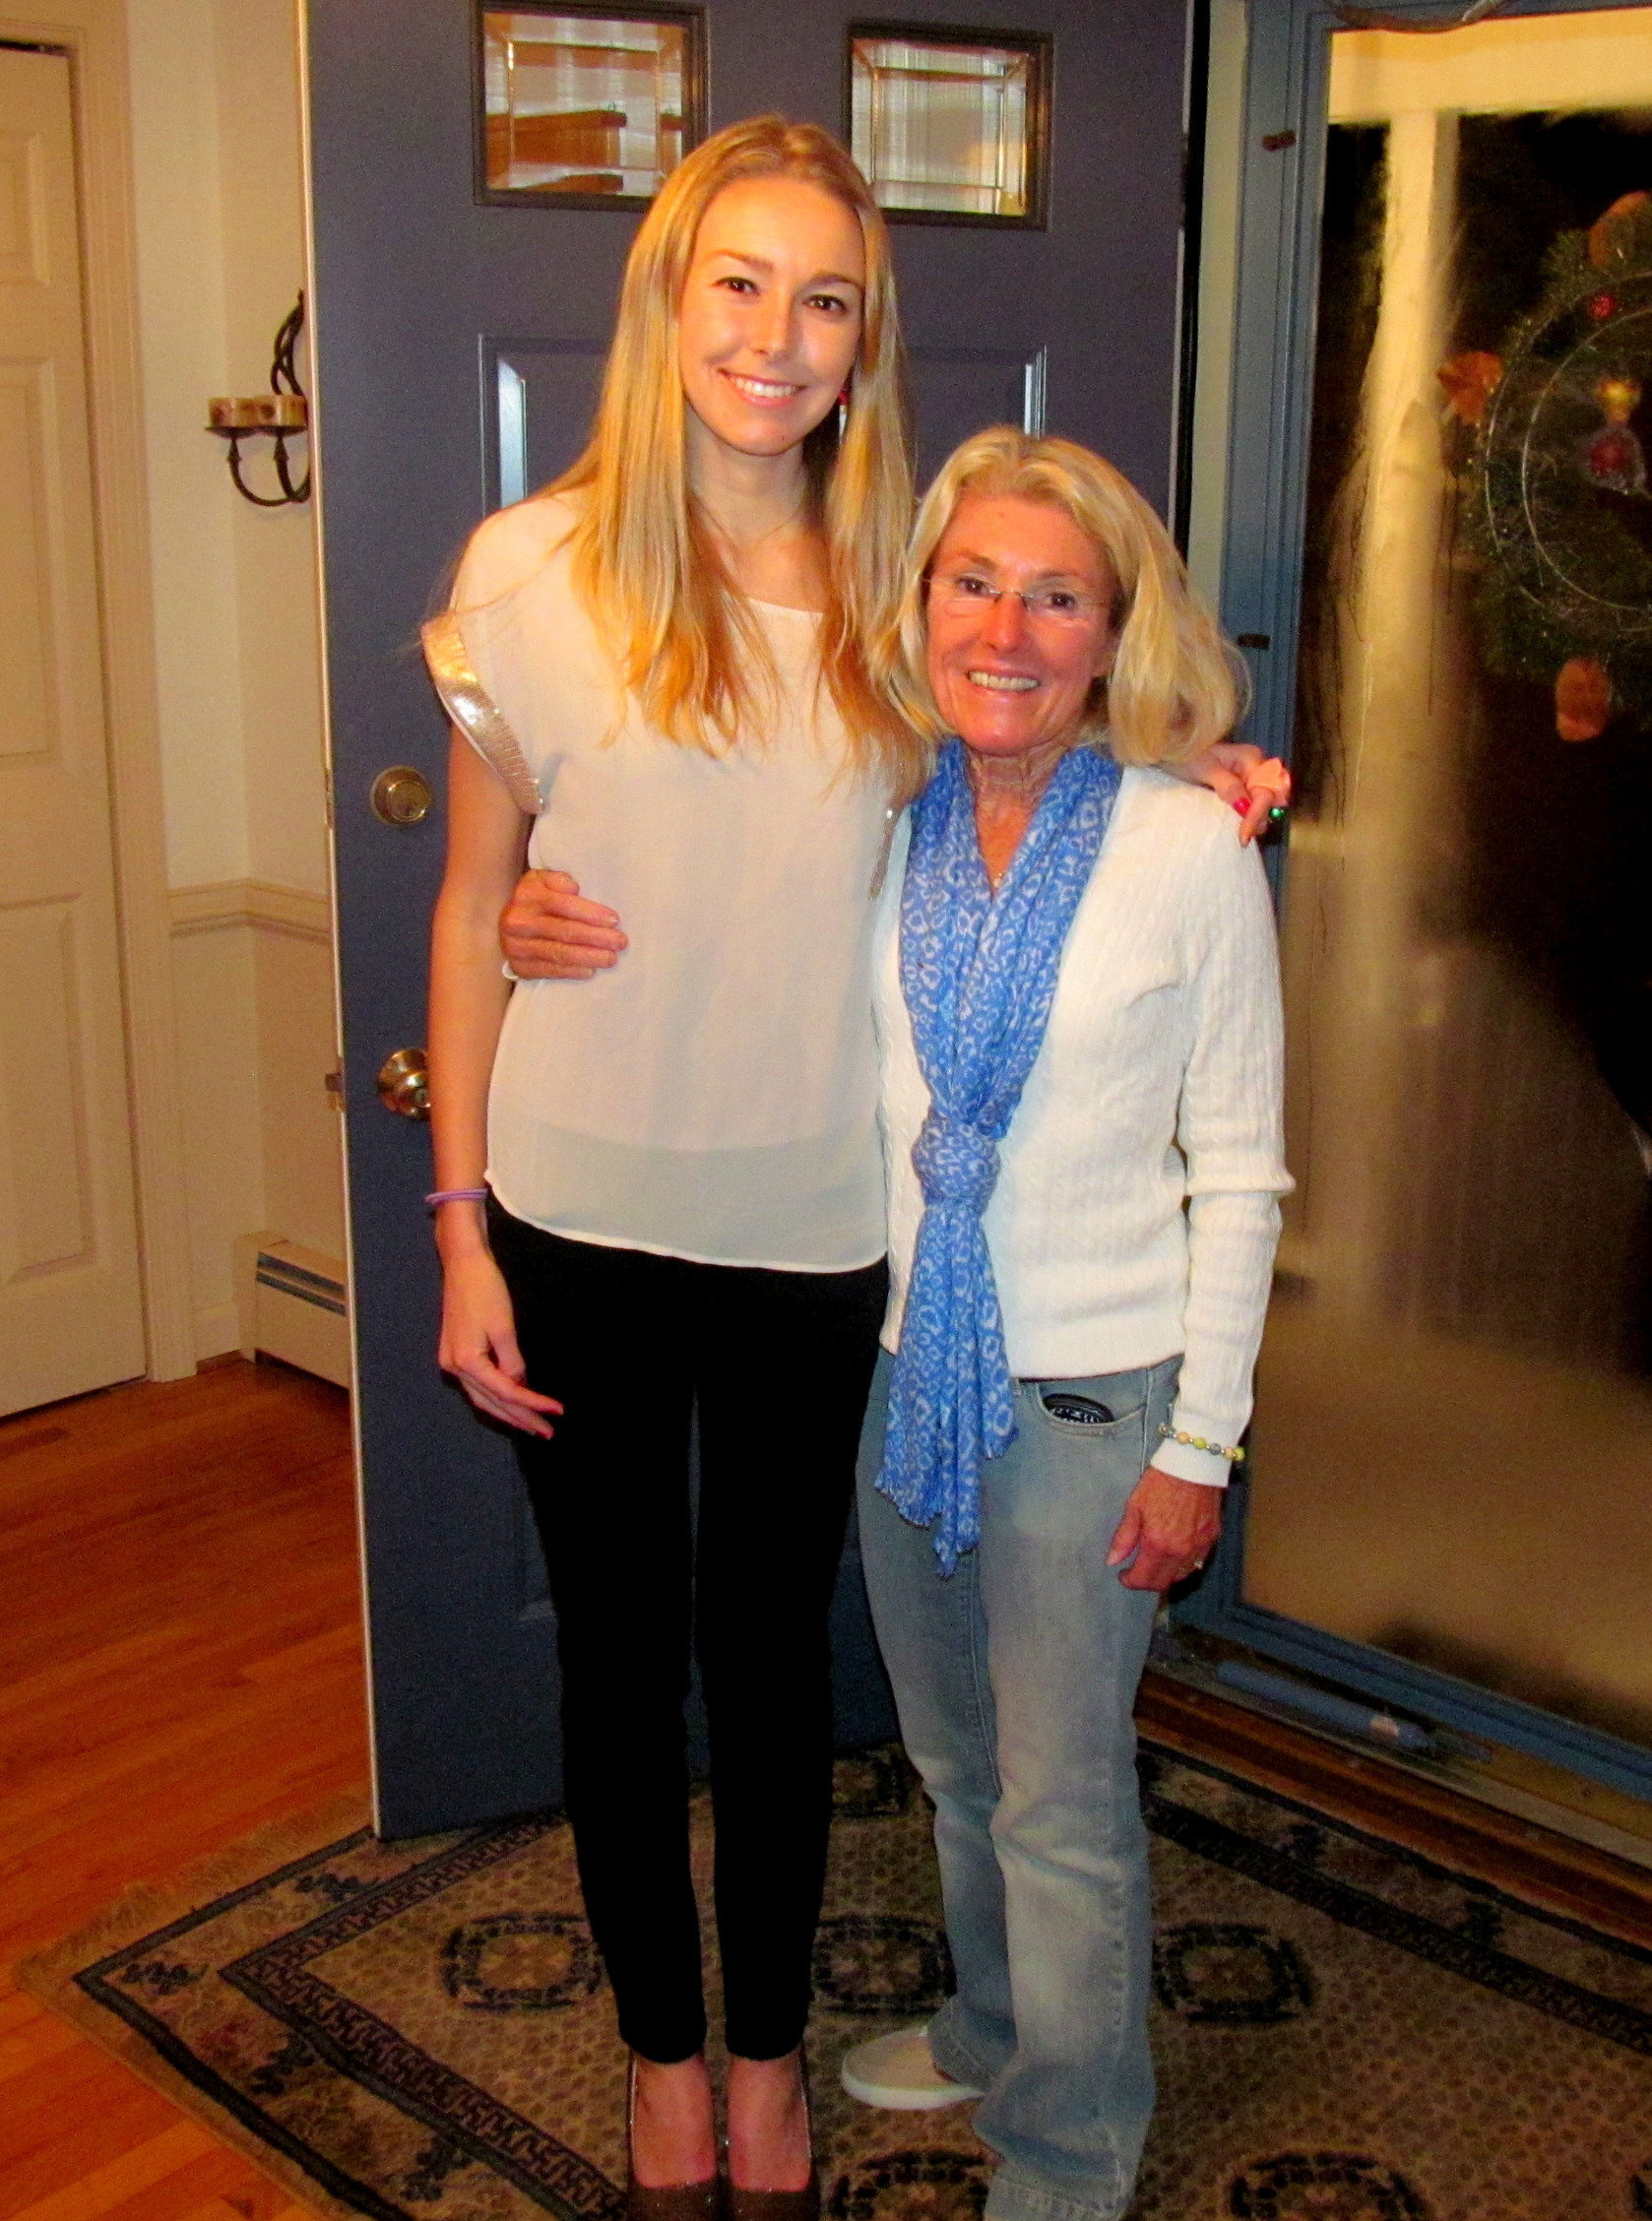 Mom and I at the party - my heels highlight our height difference!